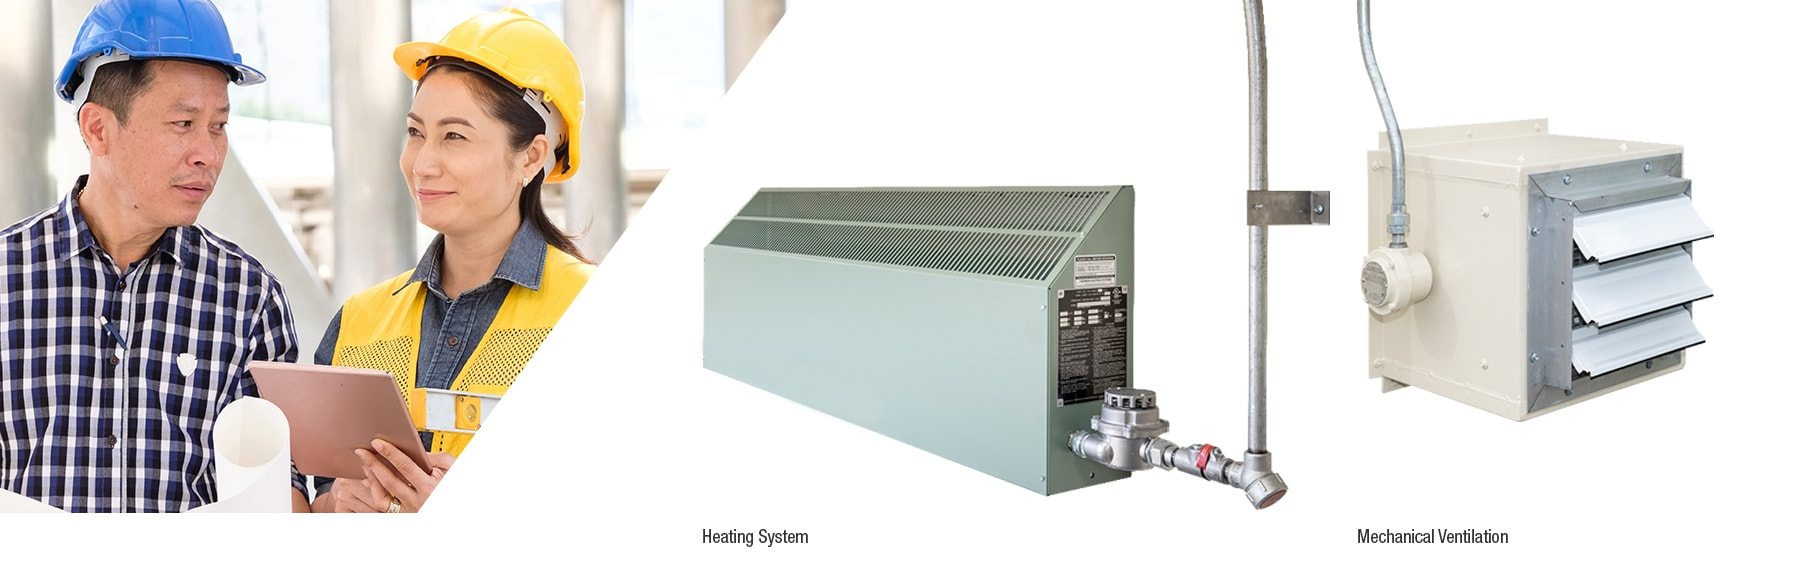 Heating and ventilation systems for chemical storage units